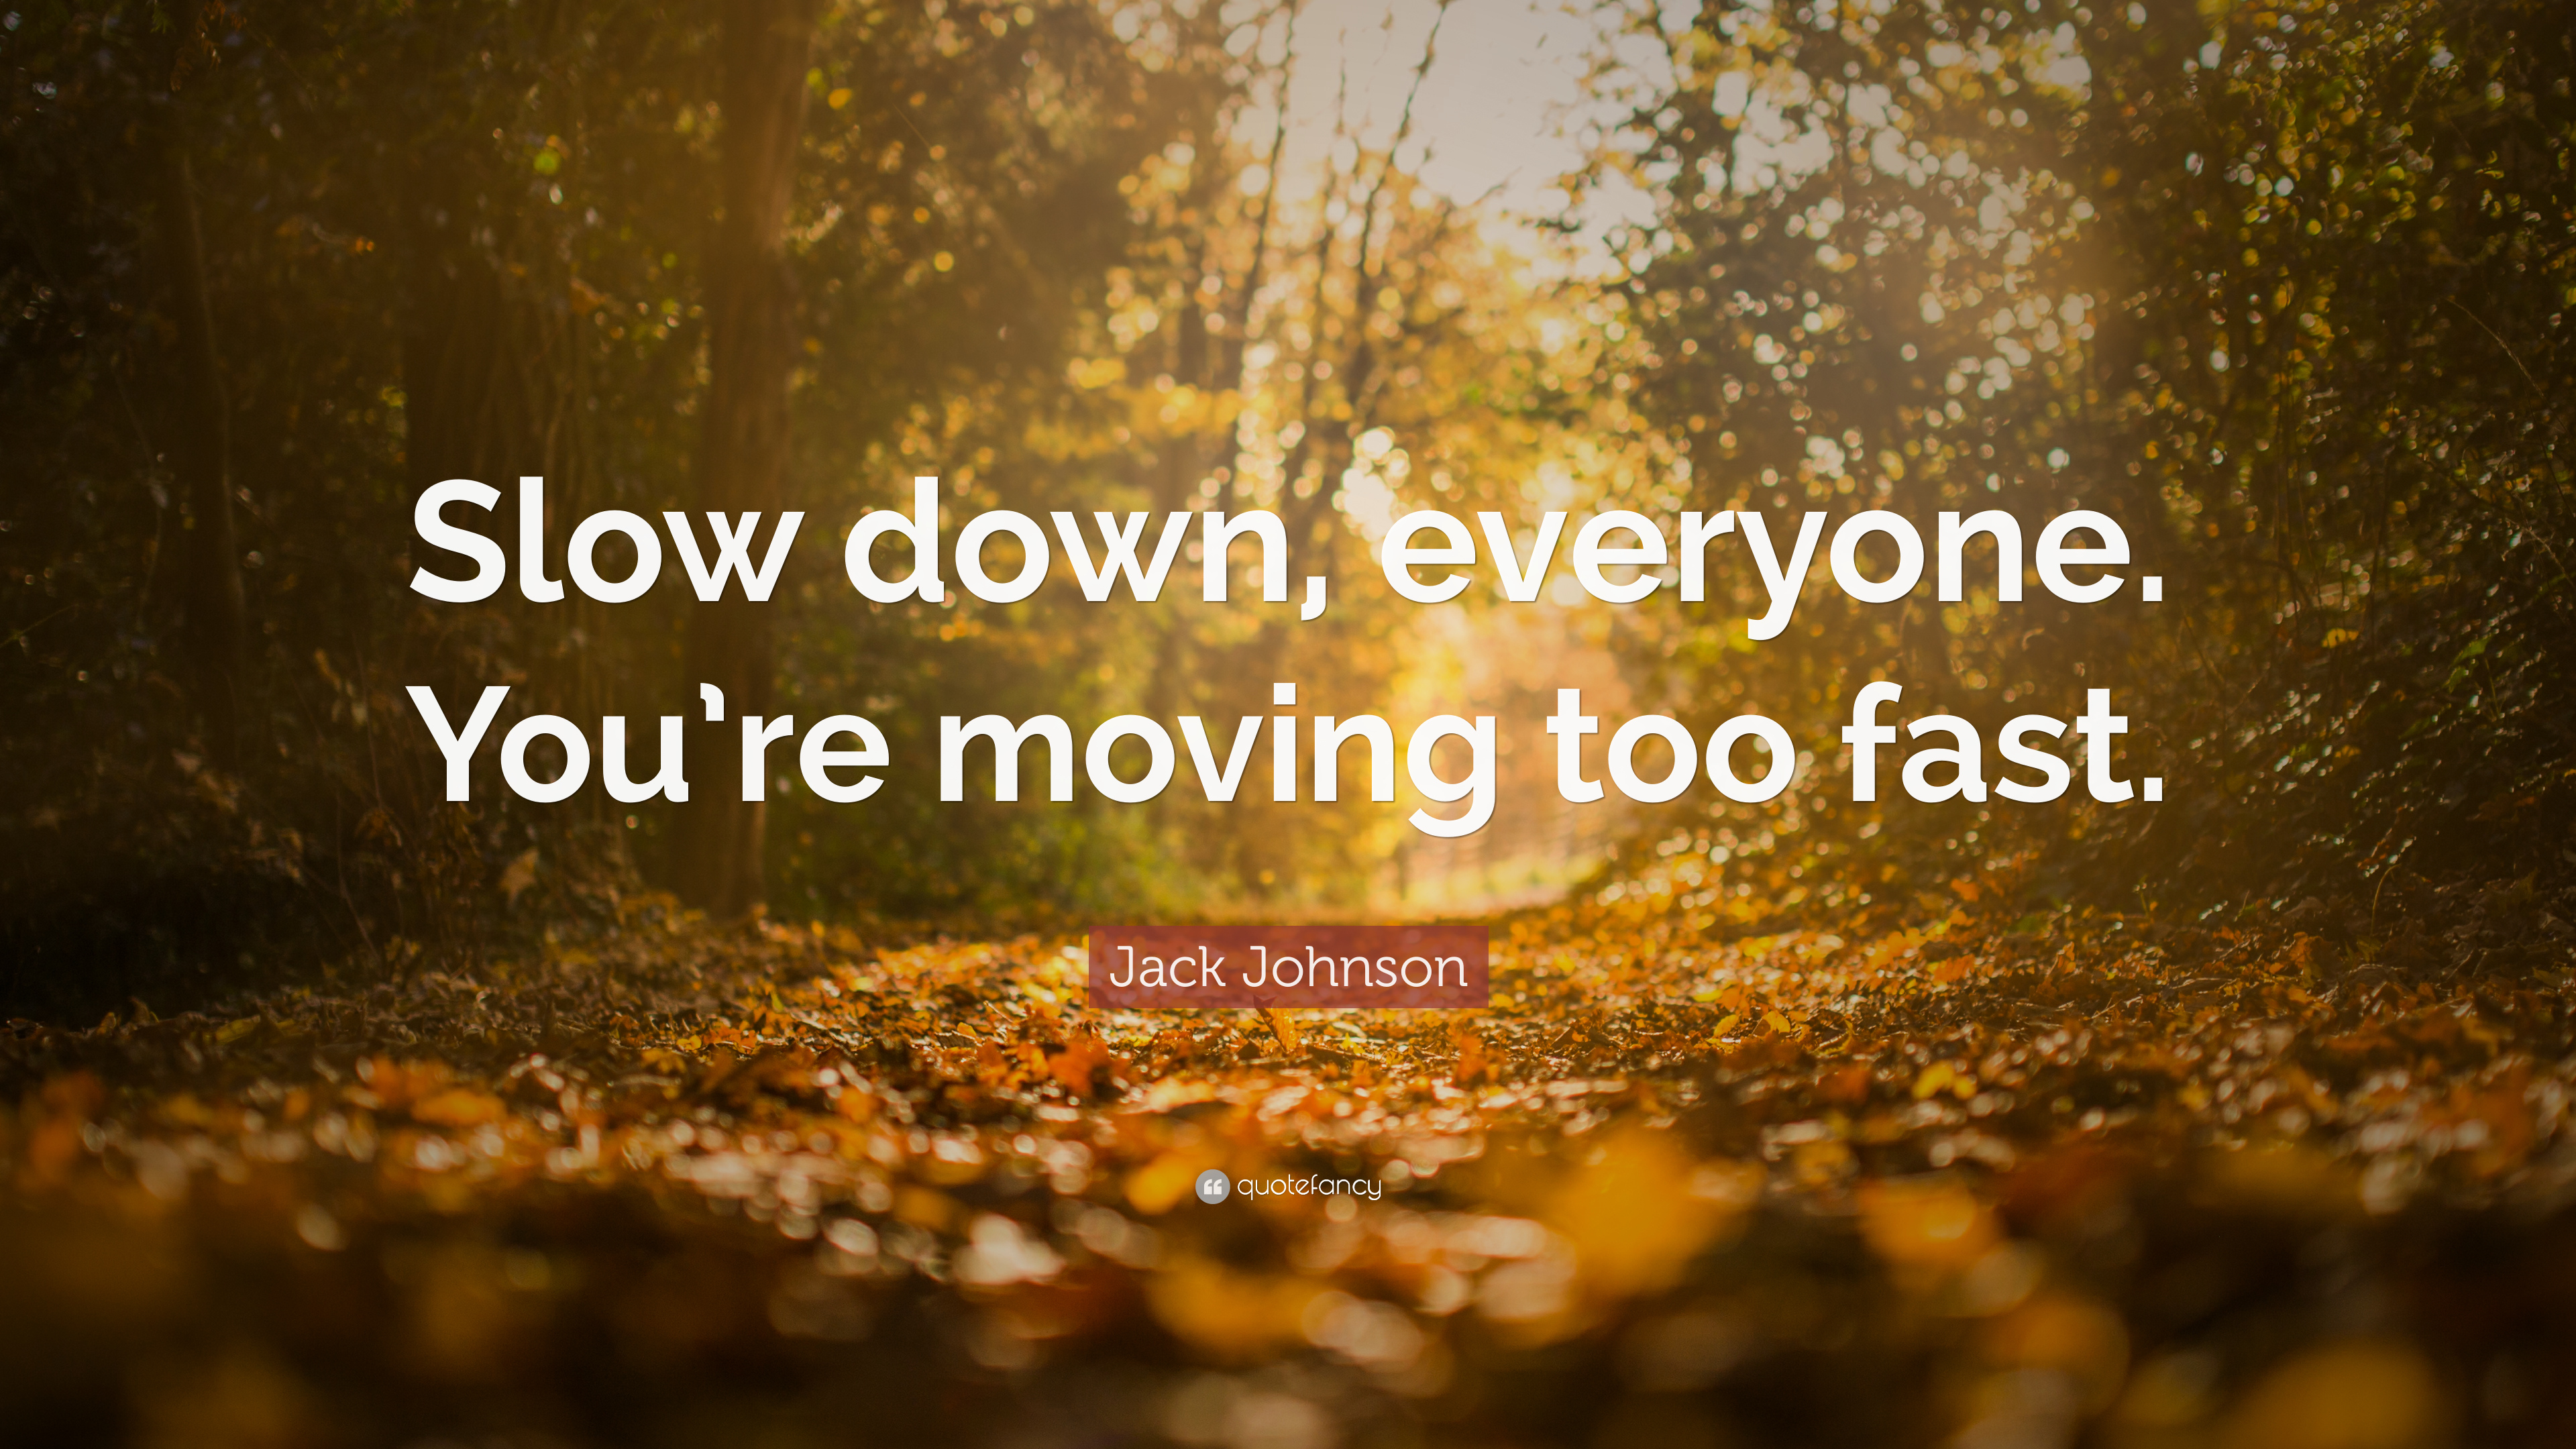 Jack Johnson Quote: Slow down, everyone. Youre moving